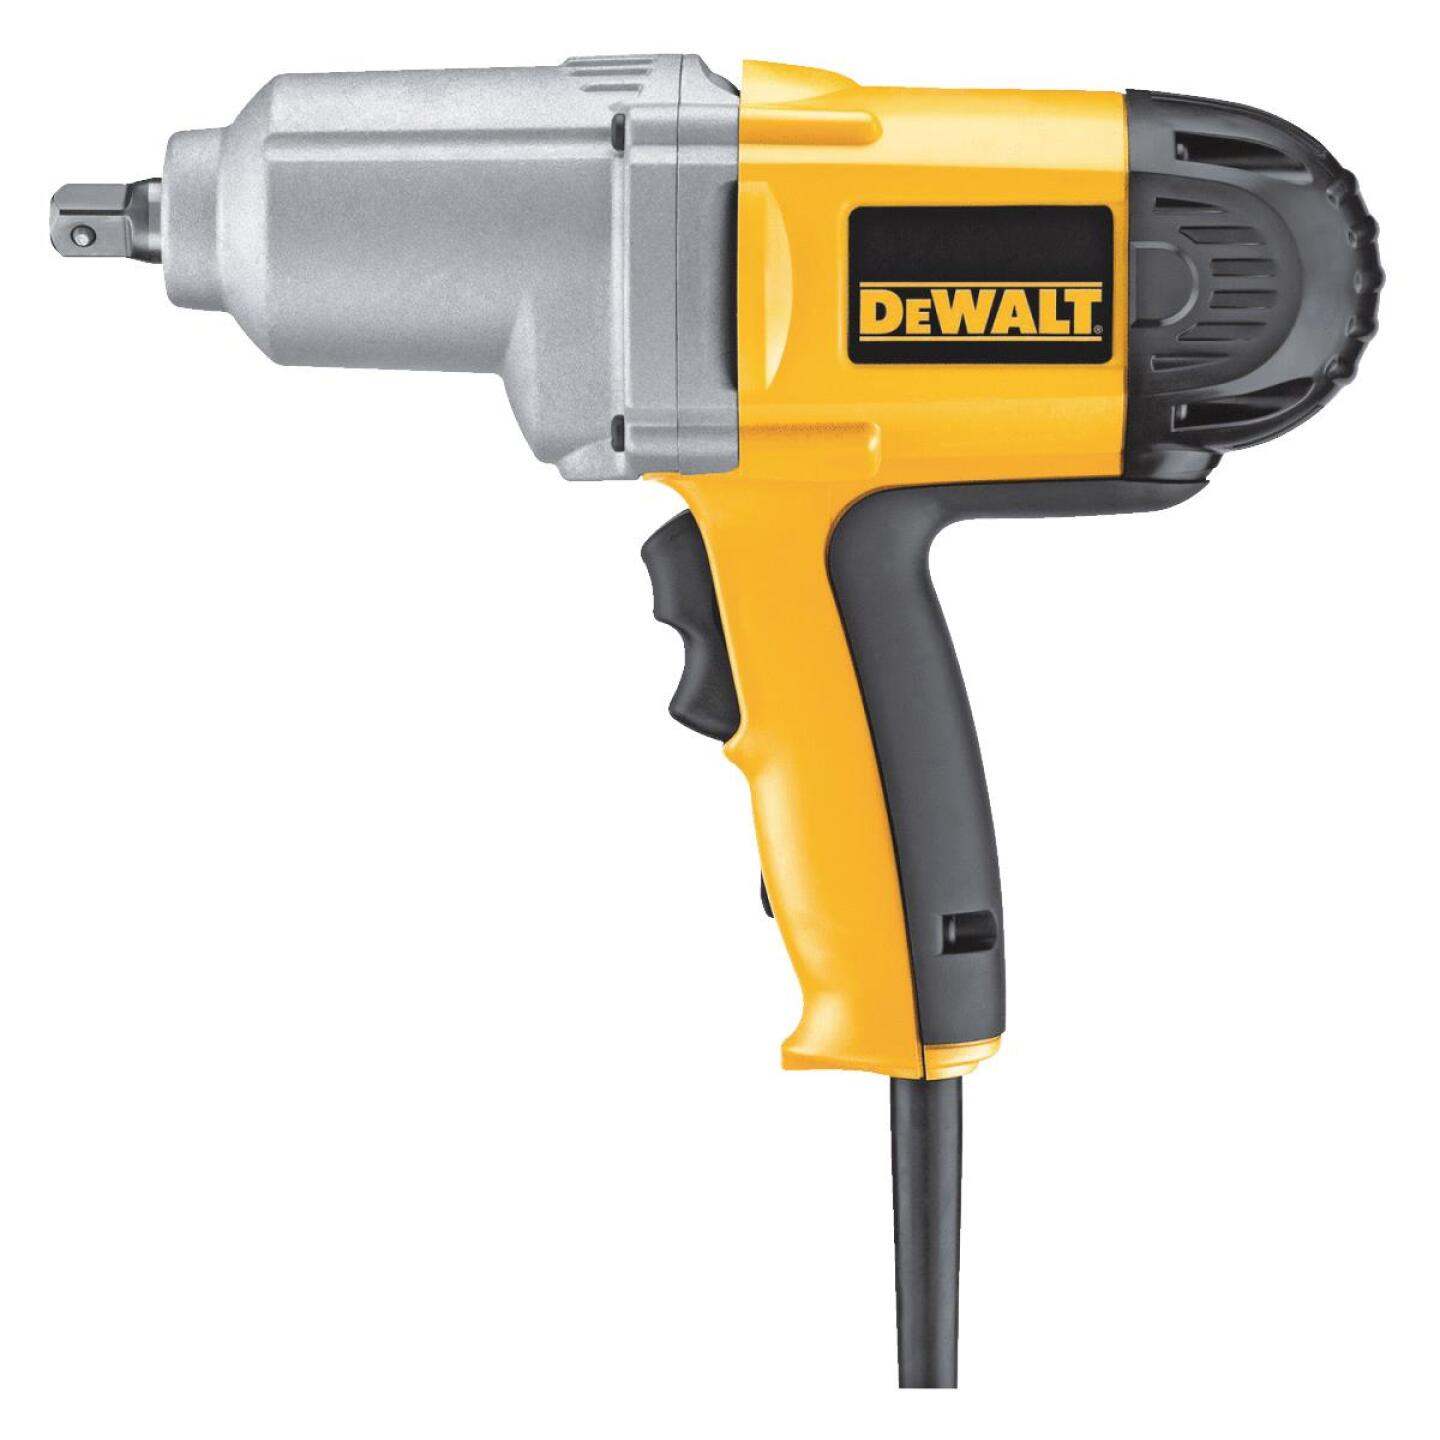 DeWalt 1/2 In. Impact Wrench with Detent Pin Anvil Image 1